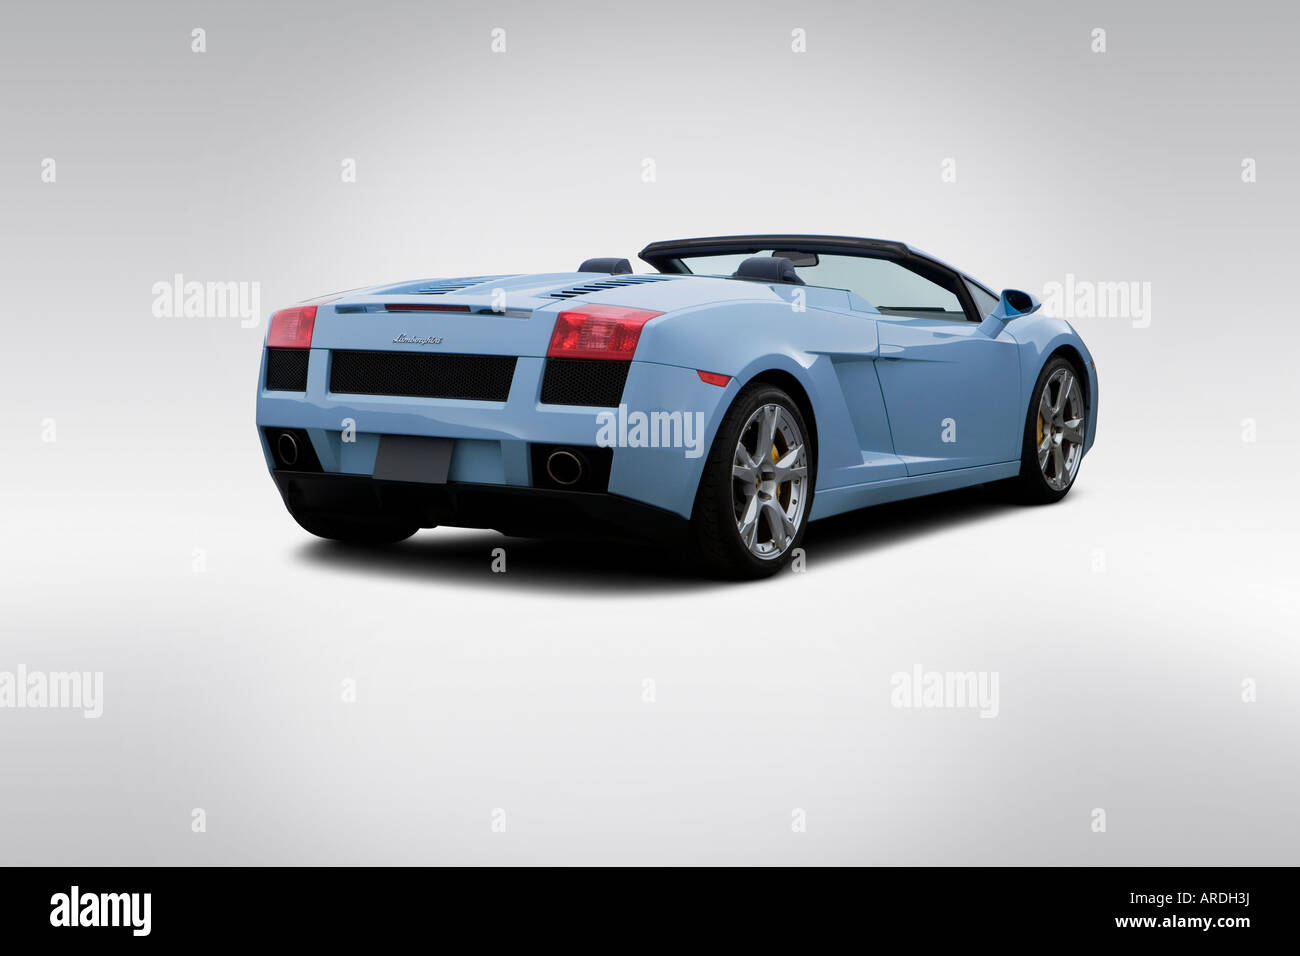 lamborghini gallardo spyder roadster stockfotos. Black Bedroom Furniture Sets. Home Design Ideas